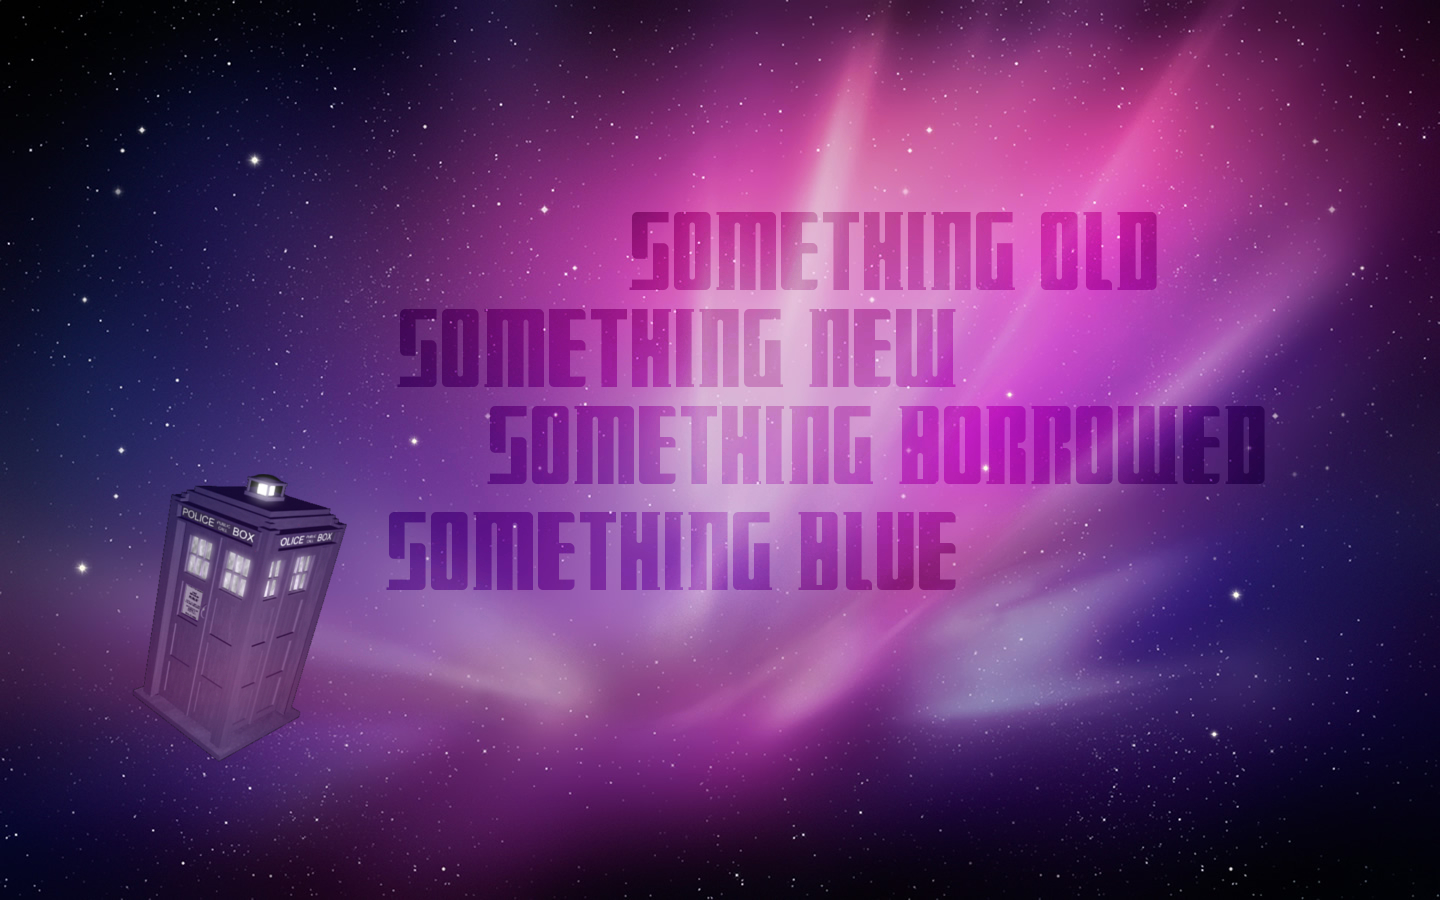 Iphone X Hd Wallpaper Space Tardis Doctor Who Apple Wallpapers Tardis Doctor Who